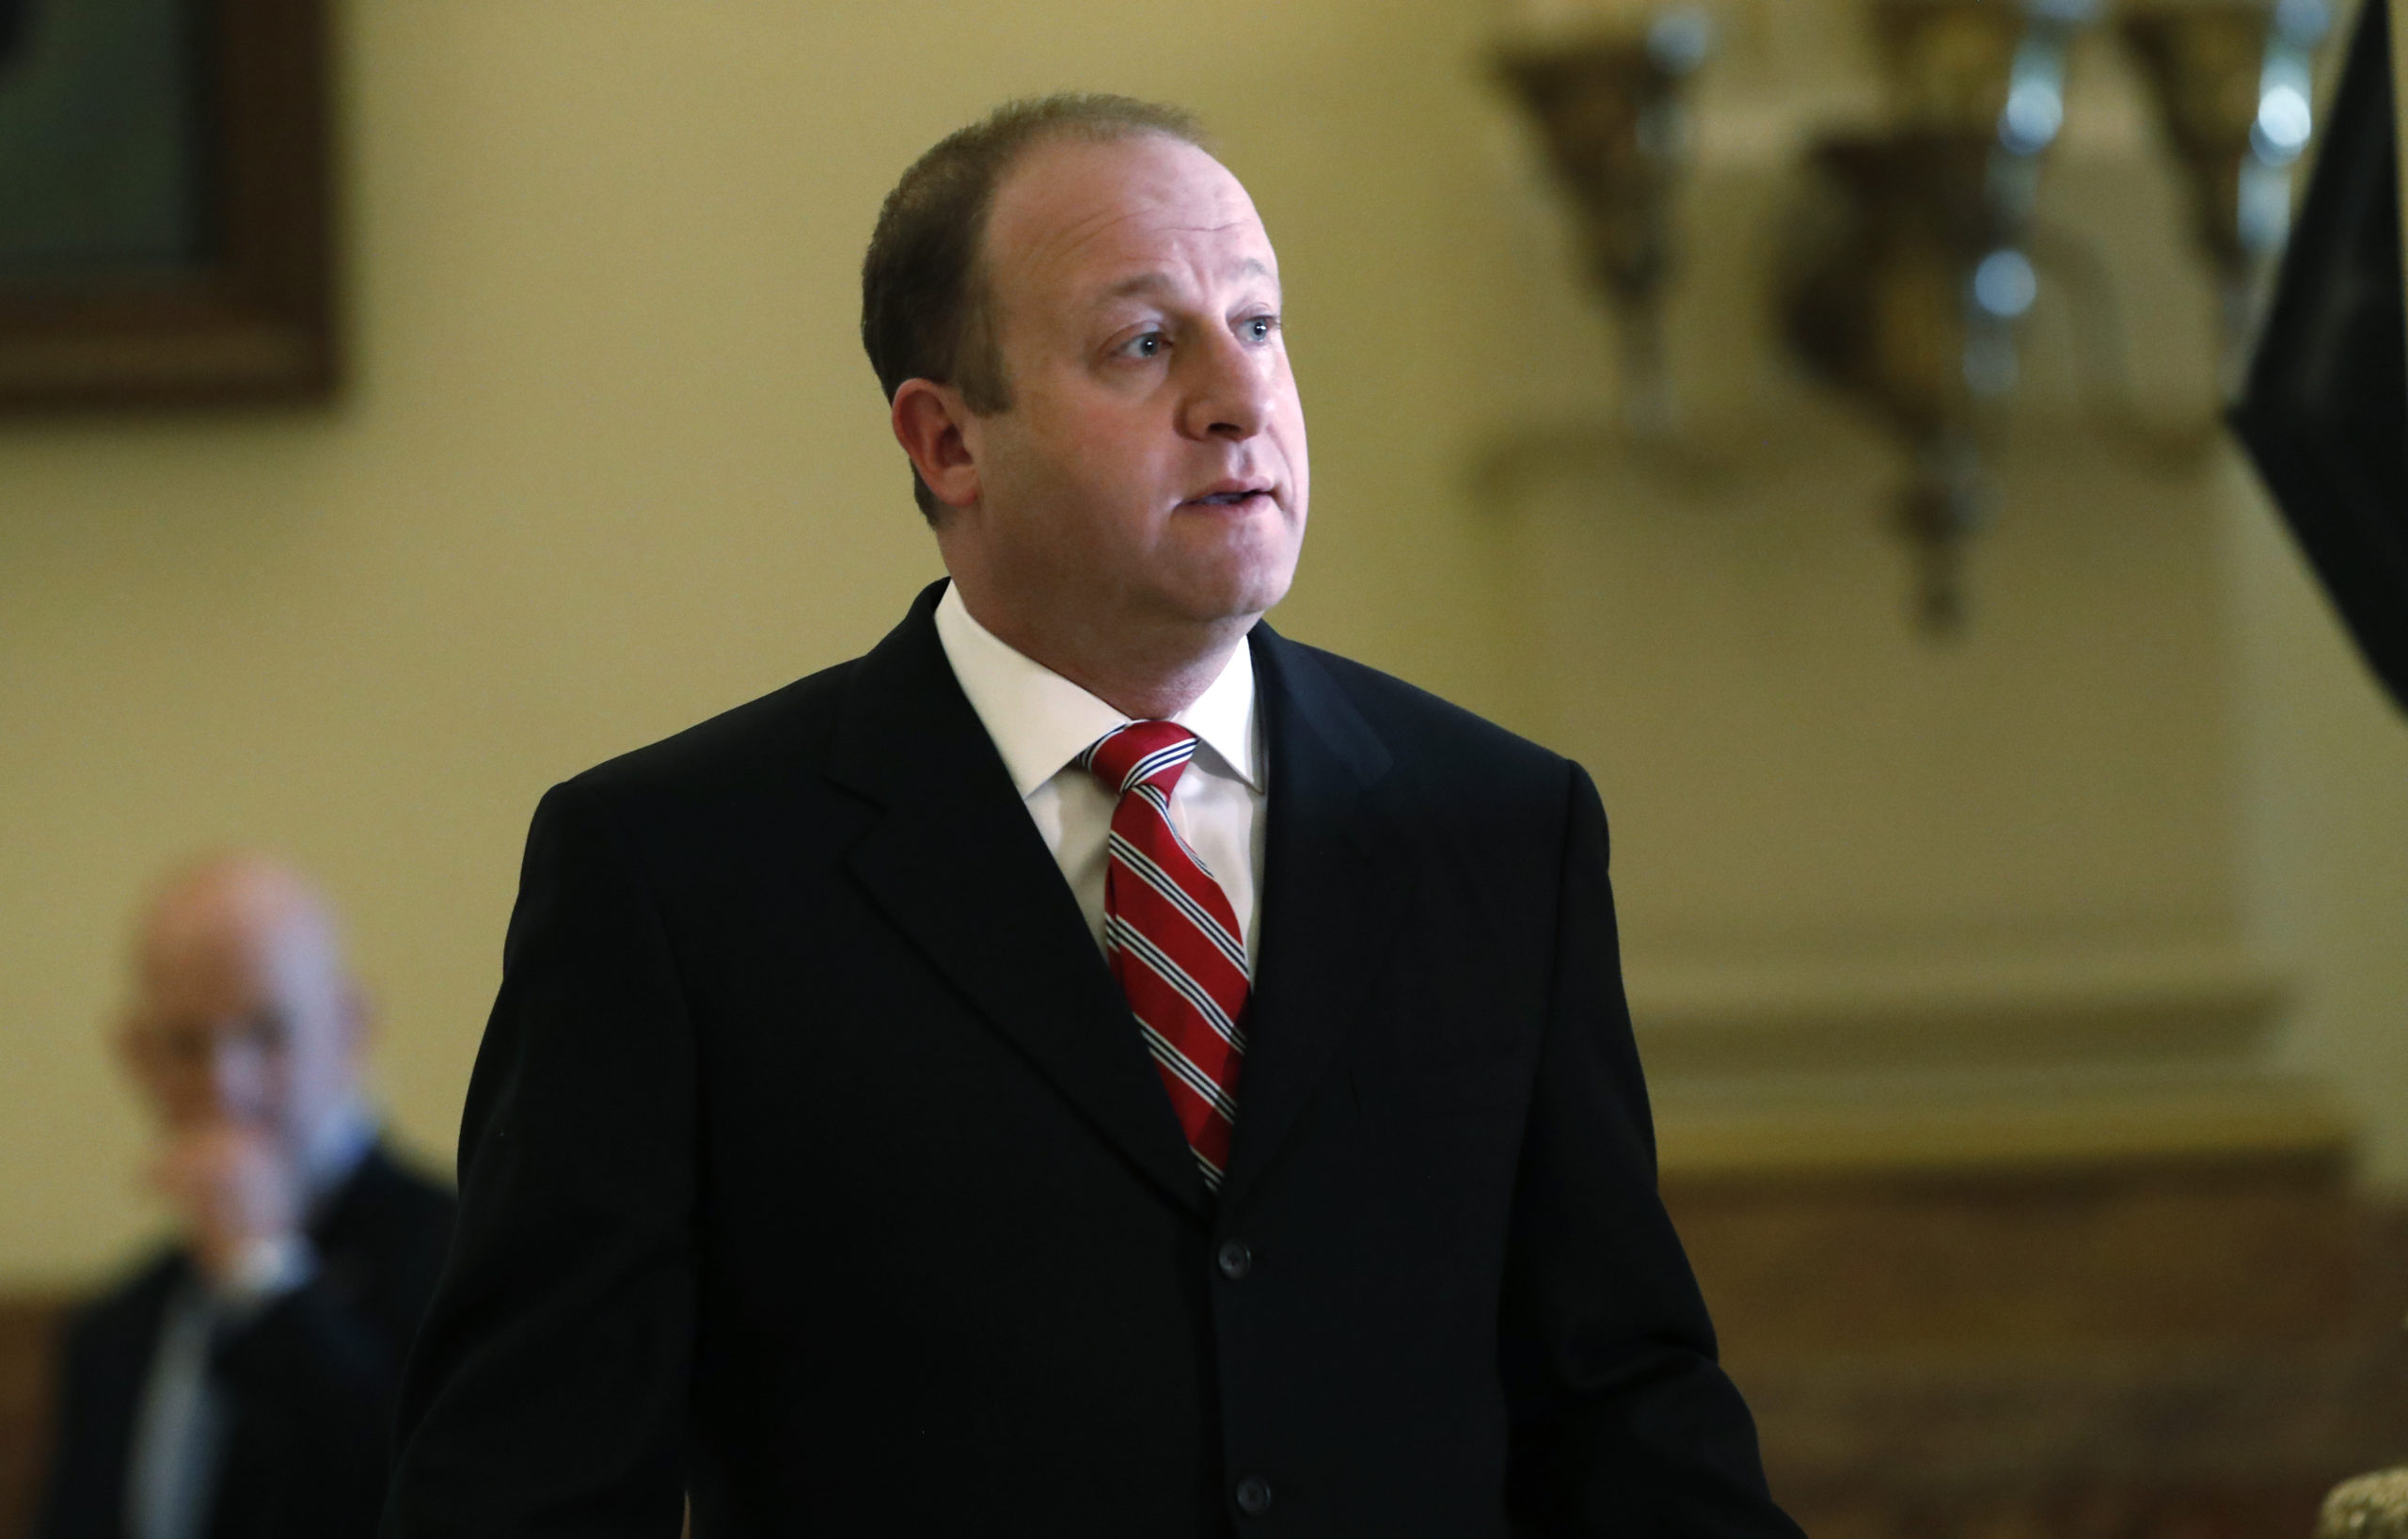 Colorado Gov. Jared Polis heads to the podium to address a news conference about the state's efforts to fend off the spread of coronavirus Monday, March 16, 2020, in Denver.